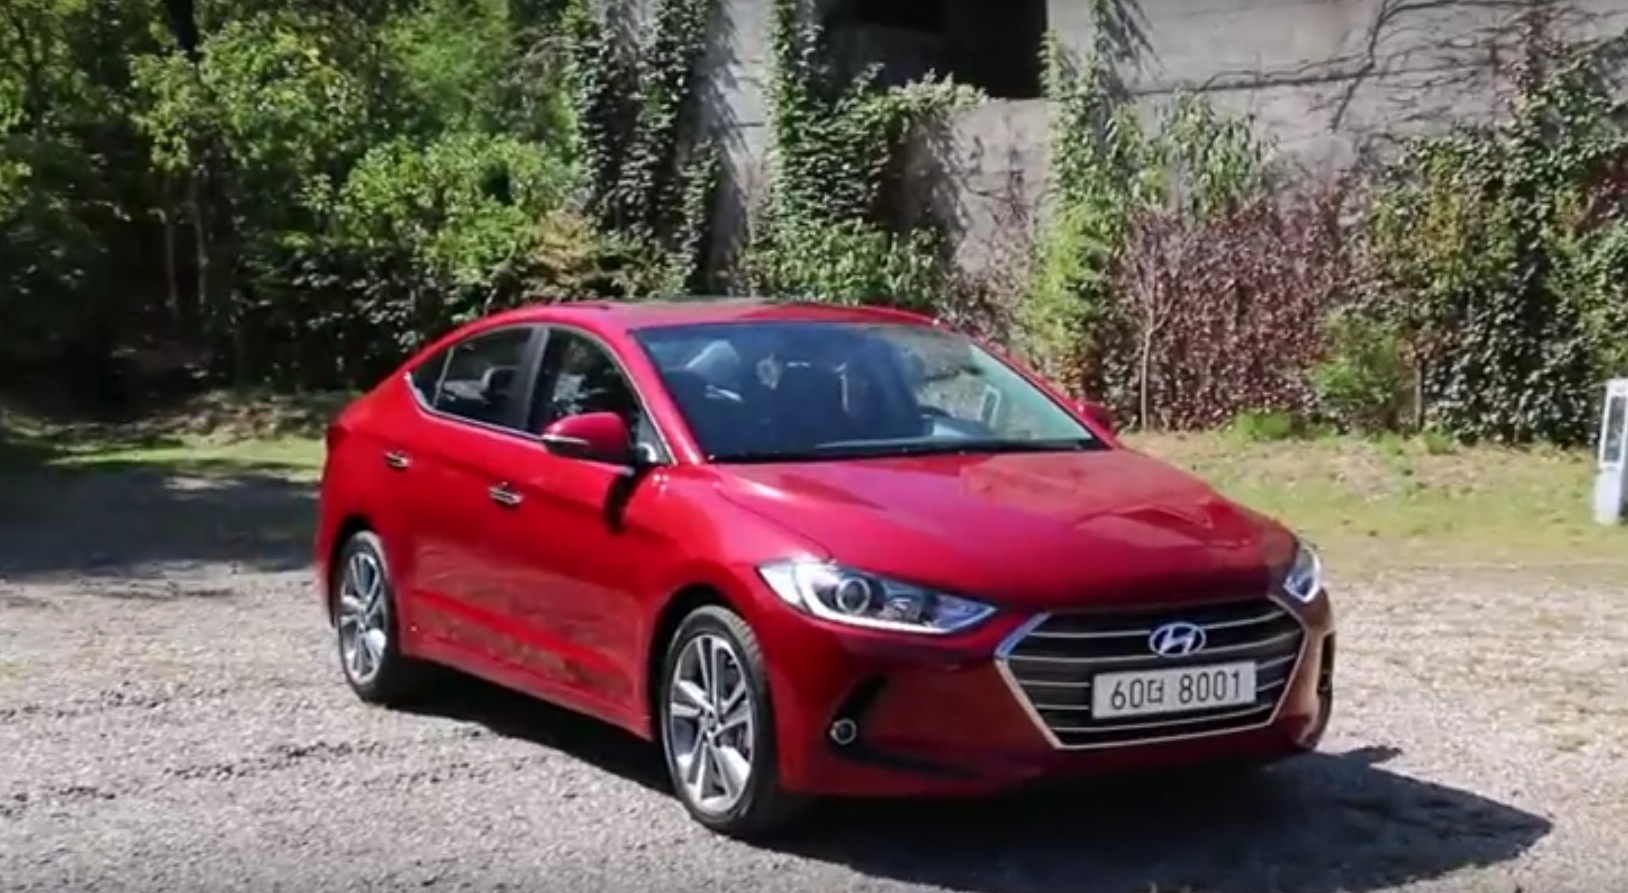 2017 Hyundai Elantra Gets Detailed Walkaround, 1 6 GDI